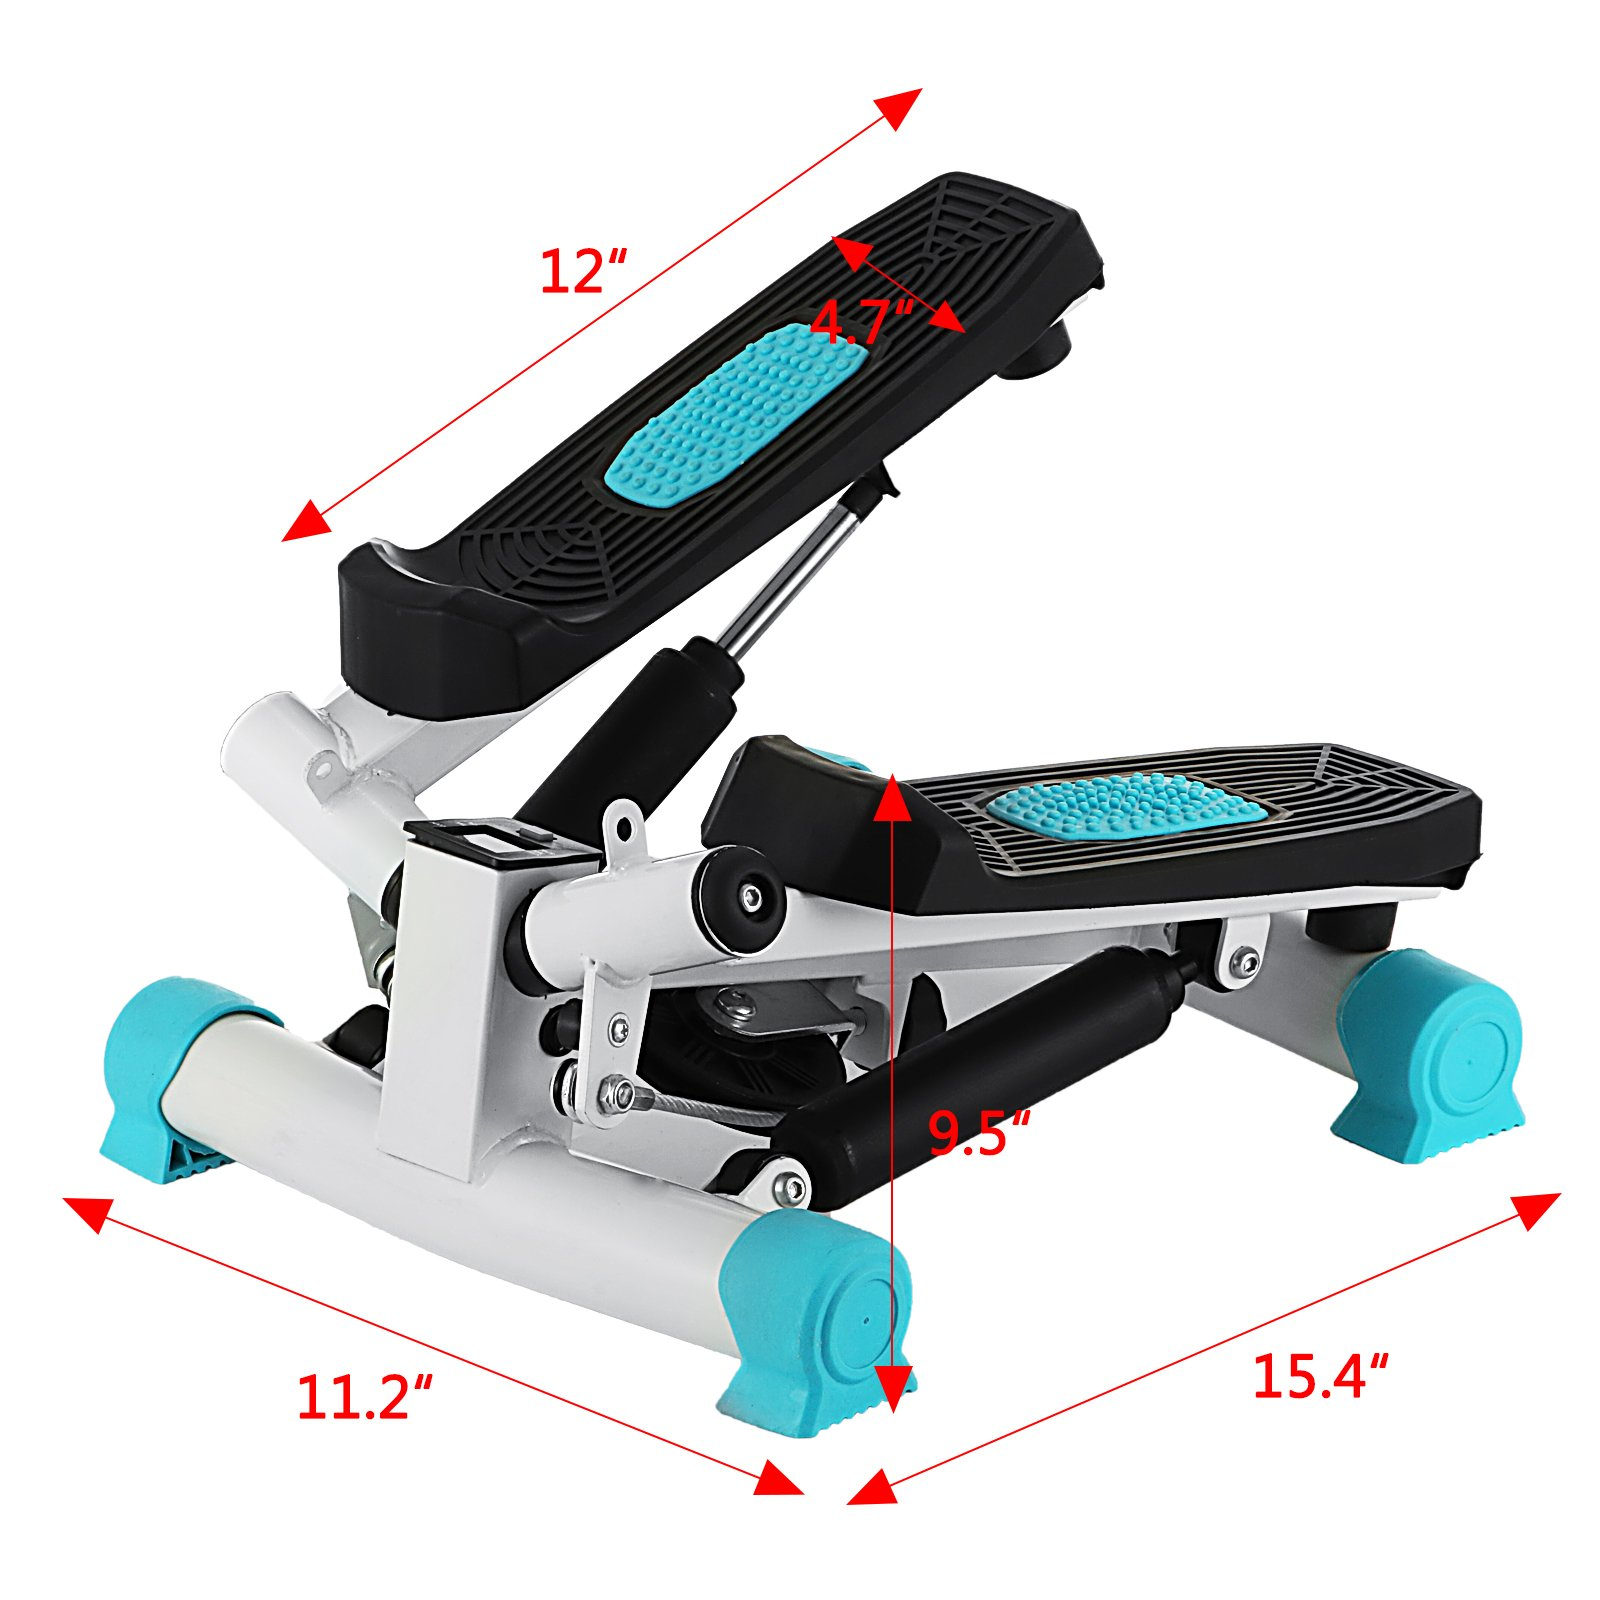 Happybuy Exercise Mini Stepper 220lbs/100kg Mini Stepper Exercise Equipment Monitor Mini Stepper Machine with Band for Exercise (Blue) by Happybuy (Image #2)